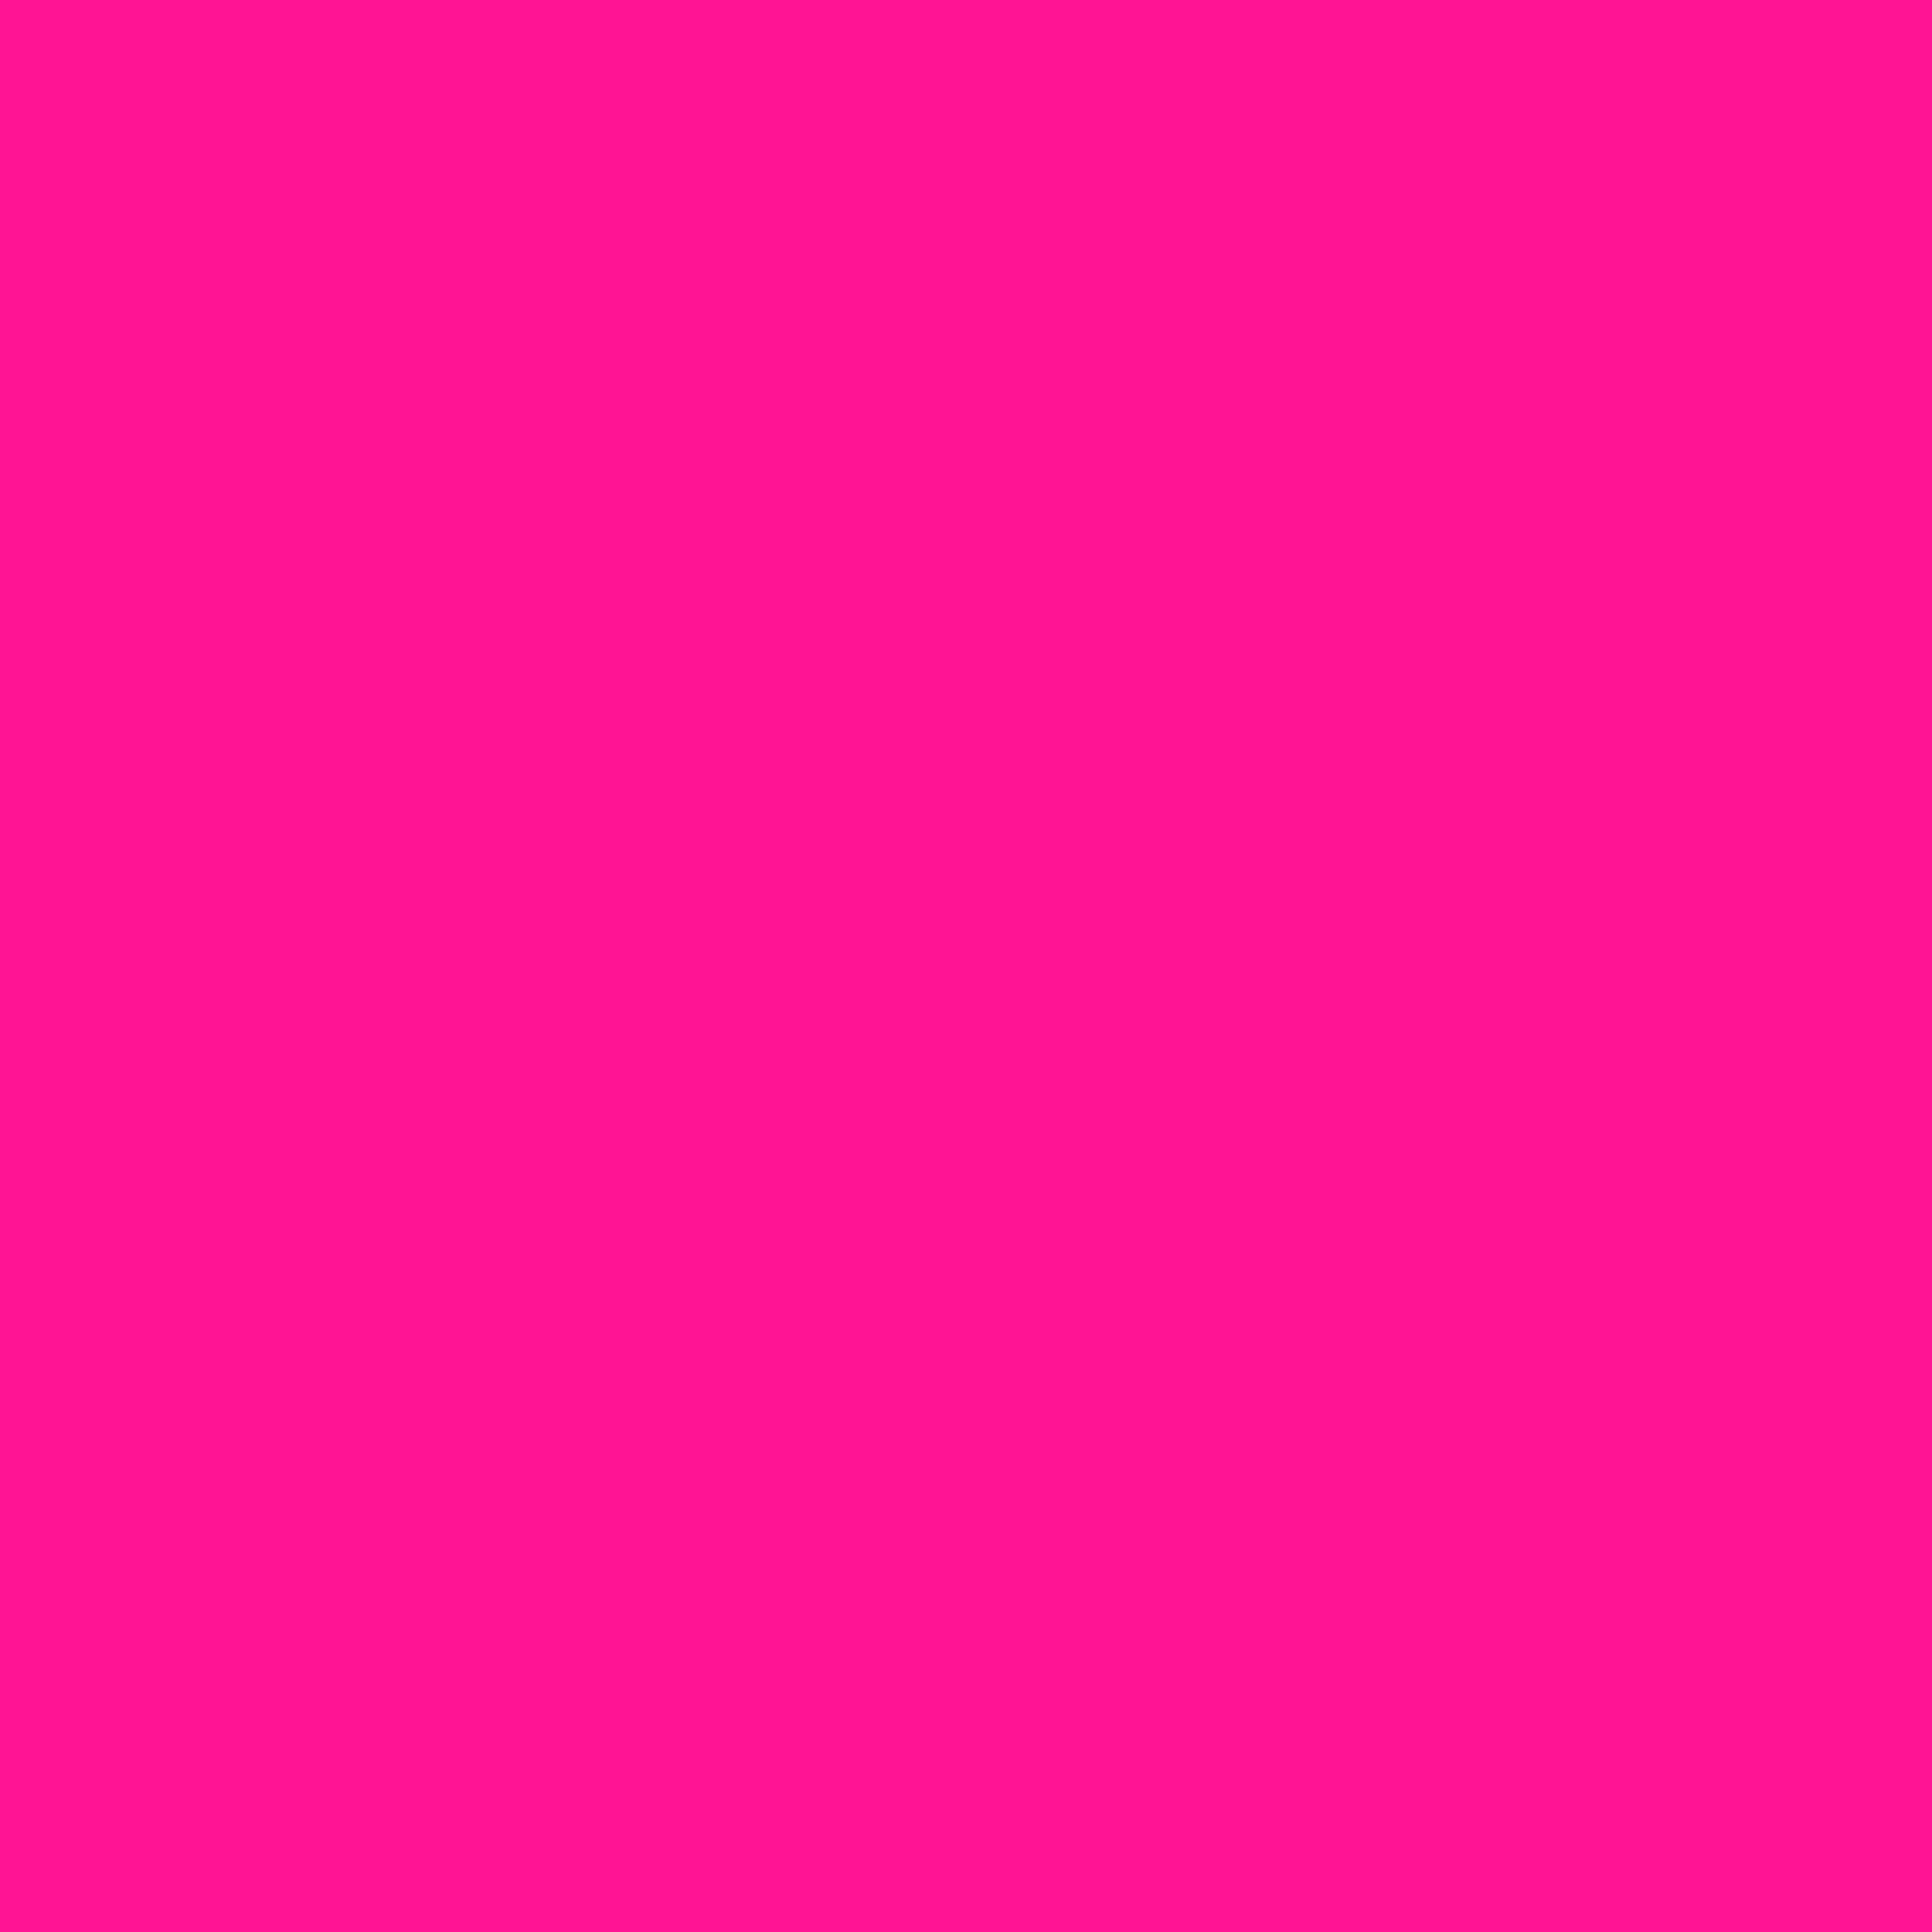 2732x2732 Fluorescent Pink Solid Color Background